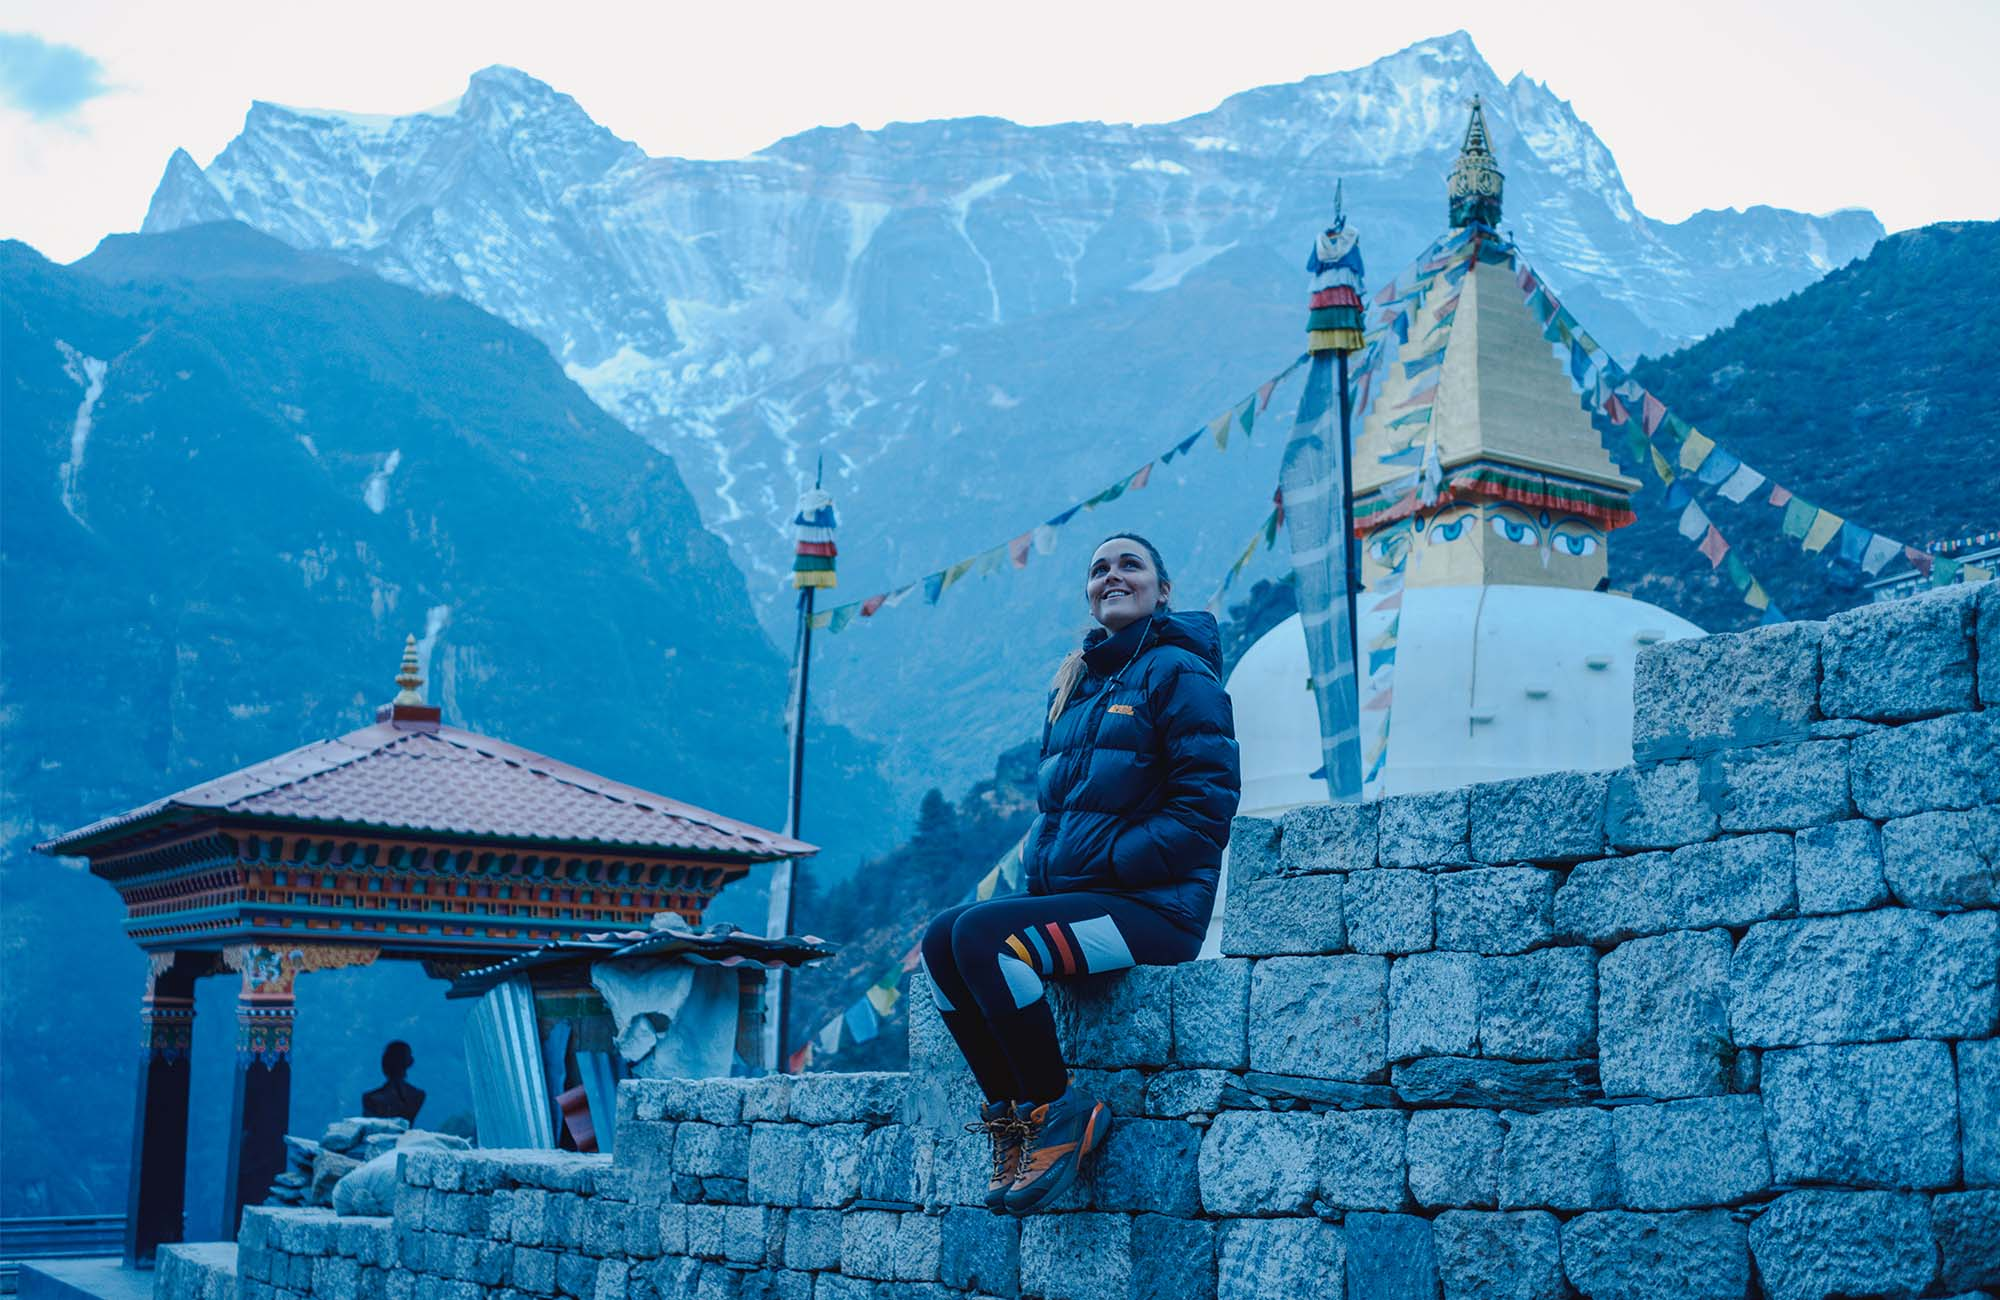 As we made our way up to Namche Bazar, the temperatures started to drop to well below zero at night, and the scenery started to get more and more stunning.